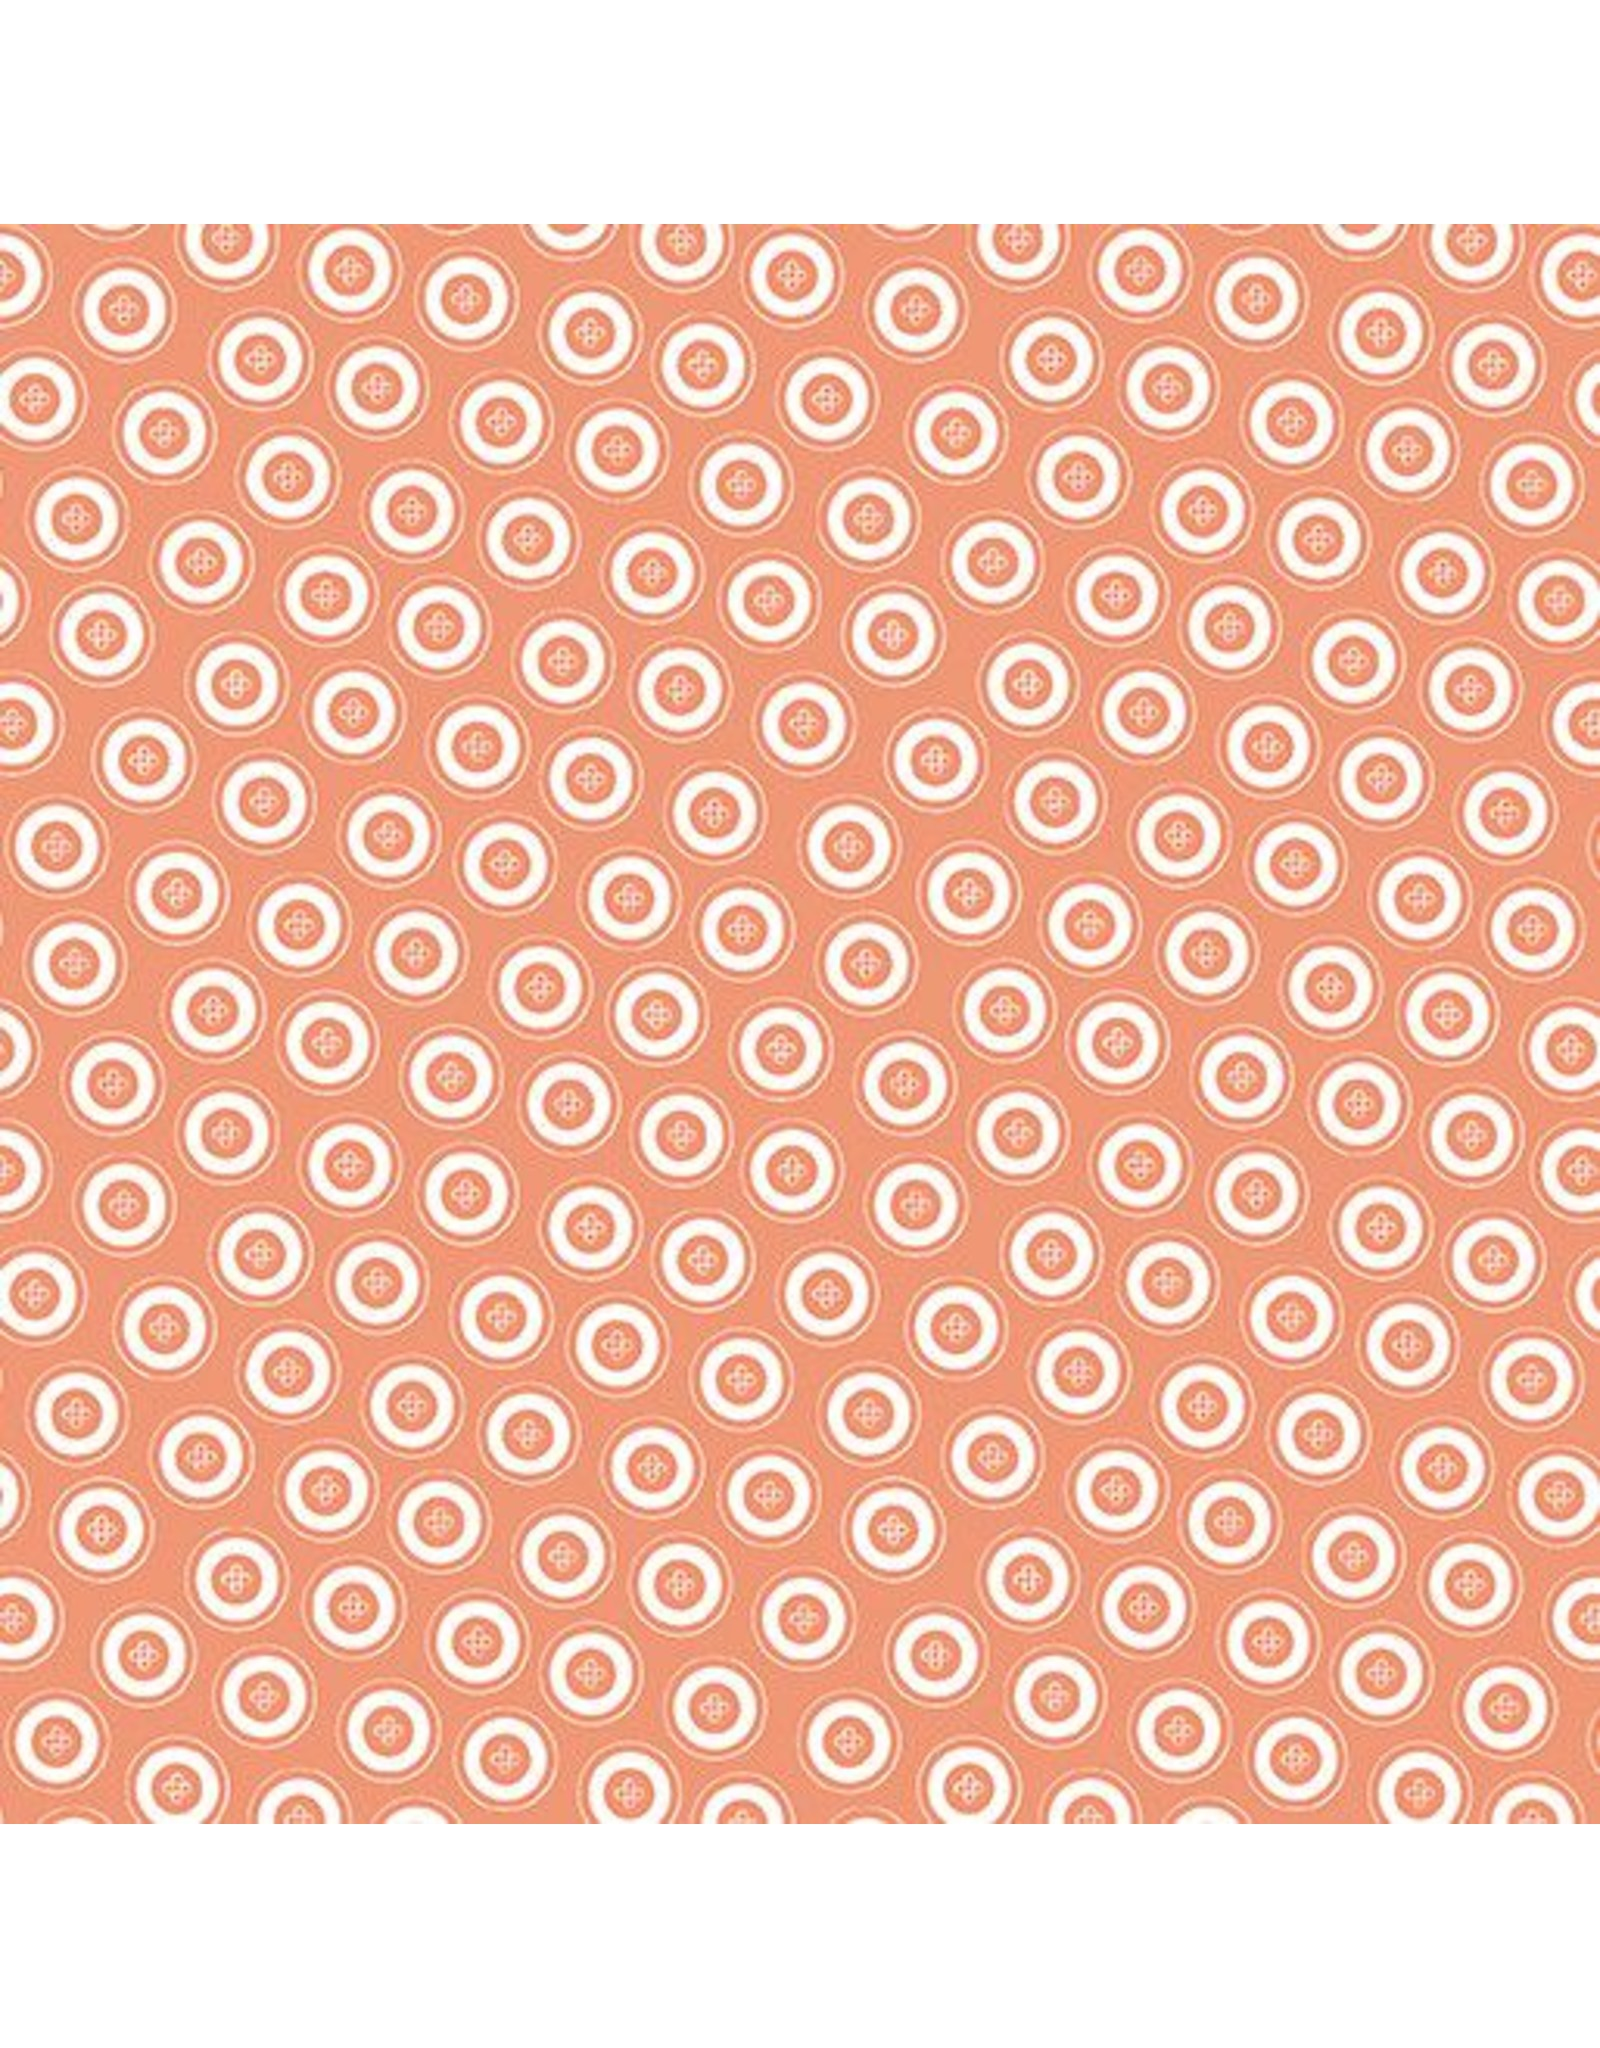 Contempo My Happy Place - Dotty Buttons Orange